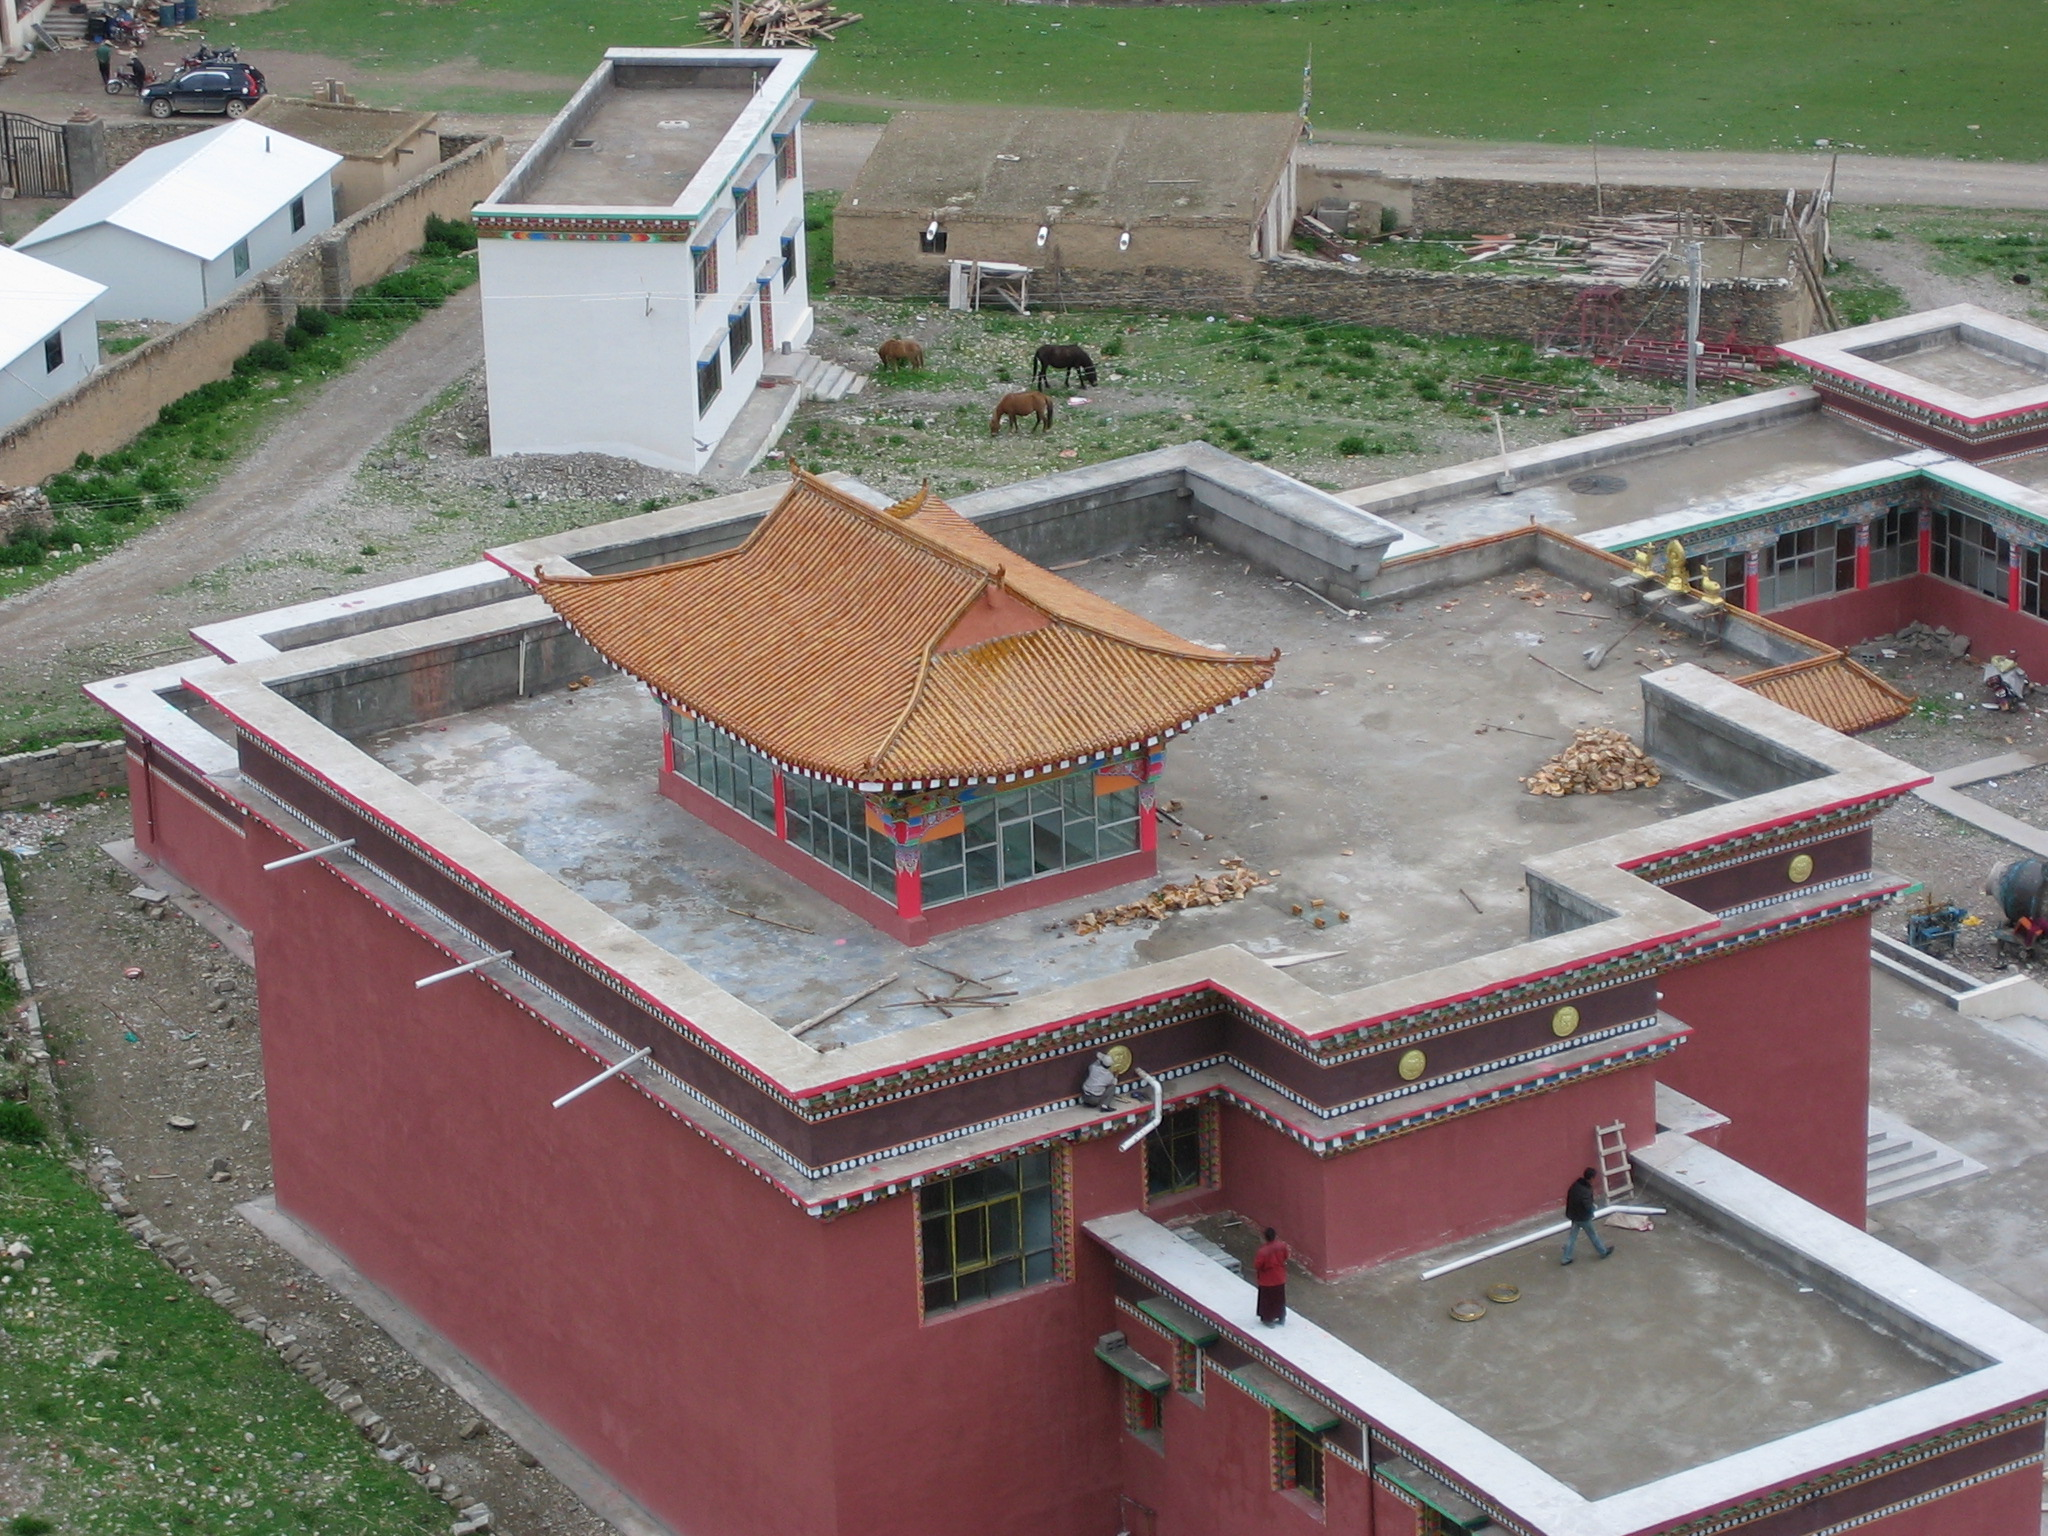 Khenpo supervises from the roof as medallions are installed along the side of the shedra.